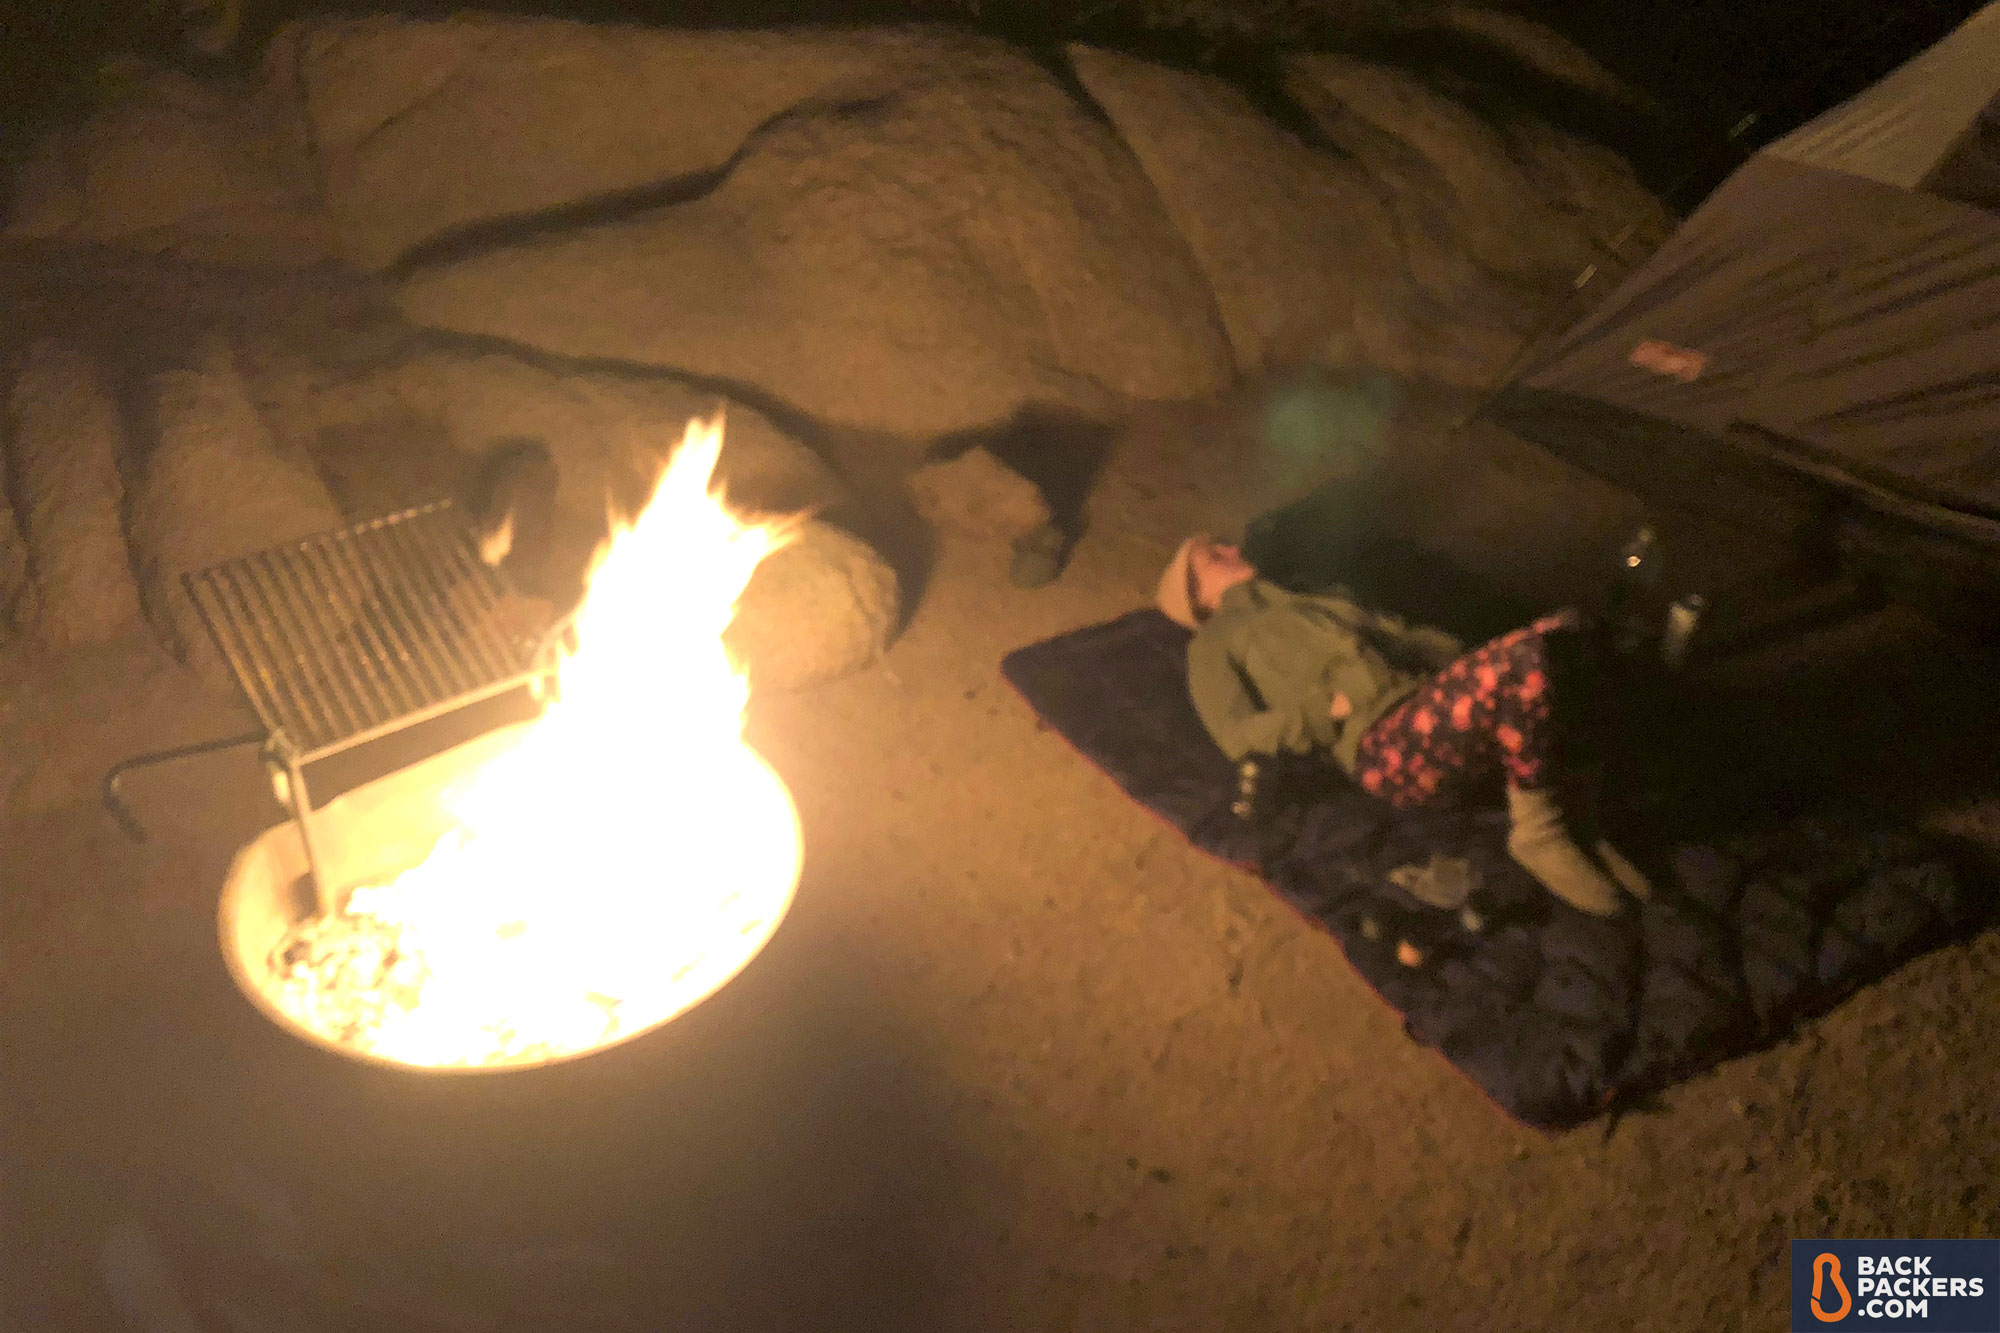 Rumpl-Down-Puffy-Blanket-review-night-campfire